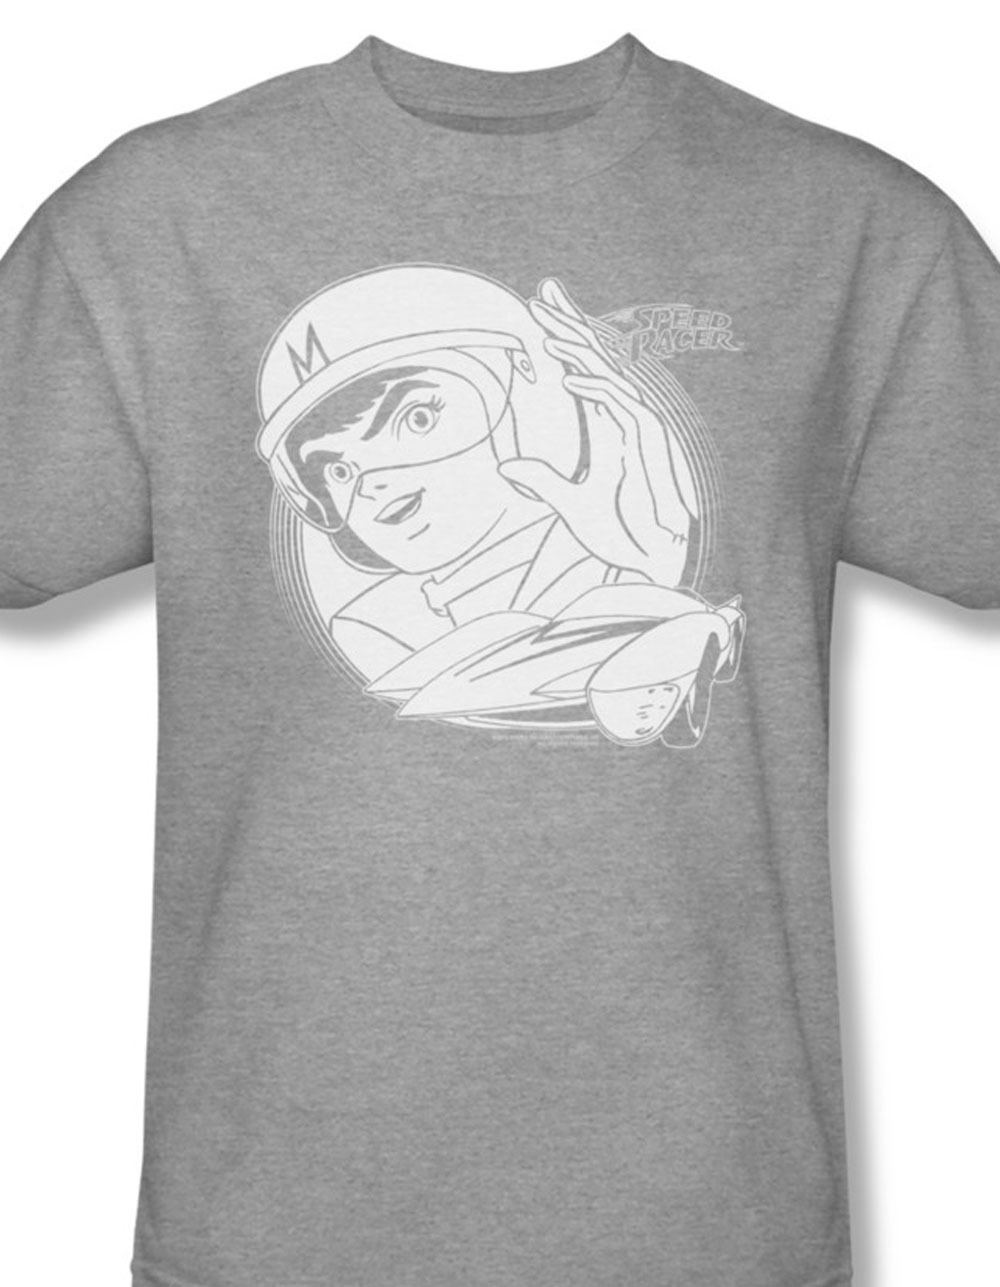 Spd144 at speed racer 60 s 70 s cartoon anime tv series for sale online gray graphic tshirt